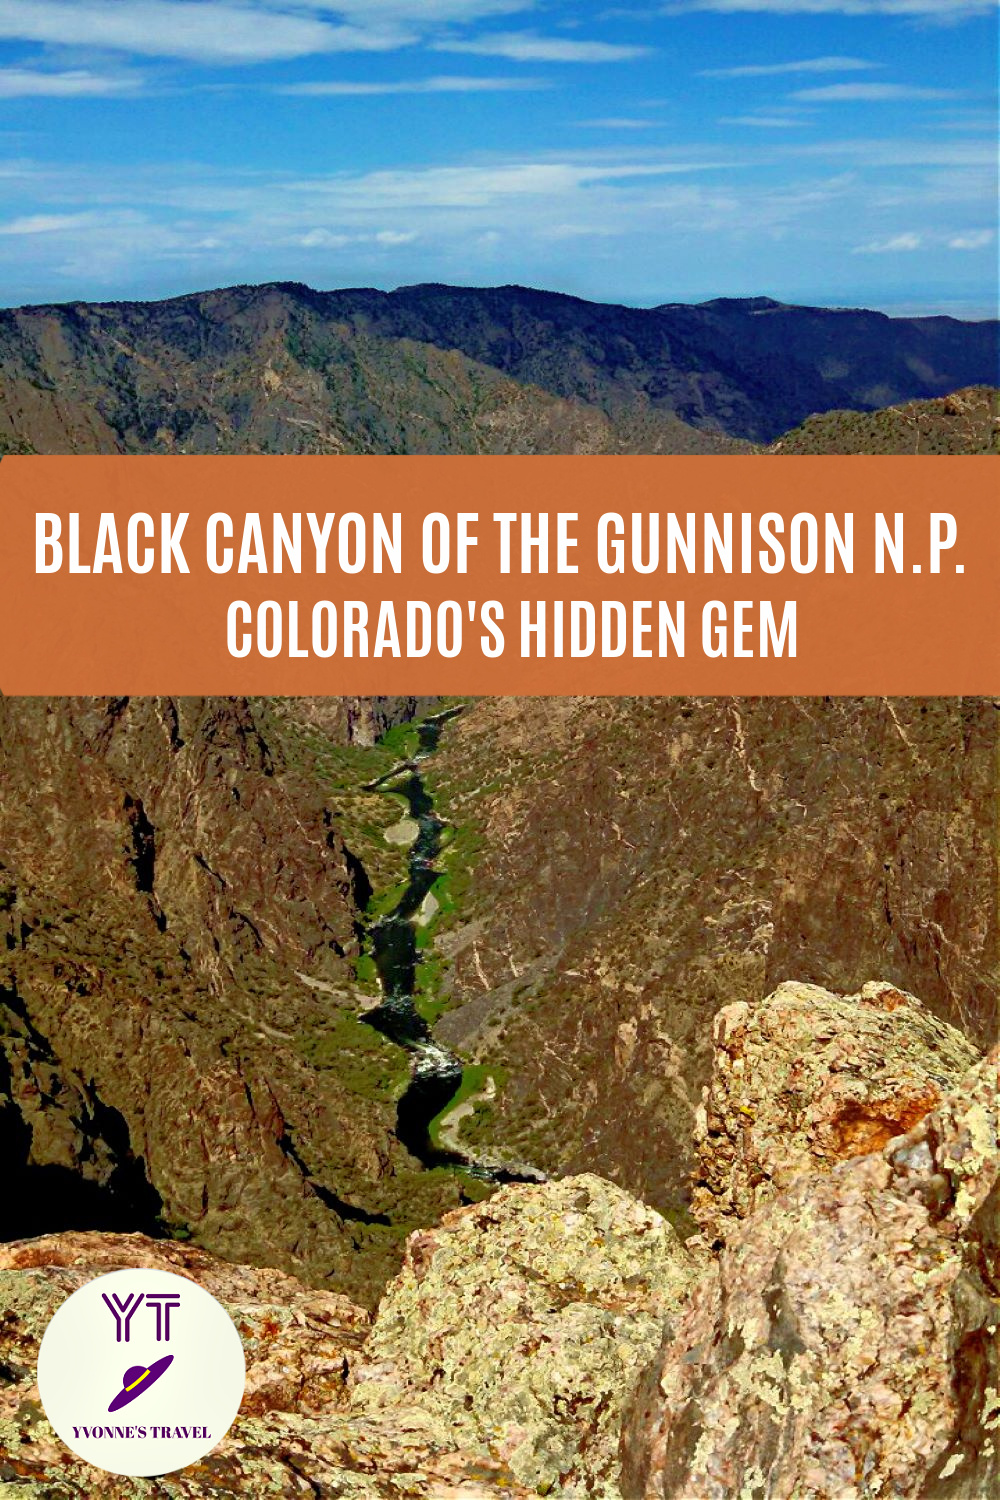 Discover Black Canyon of the Gunnison National Park, also called Black Canyon of Colorado, and see why it should be on your bucket list.